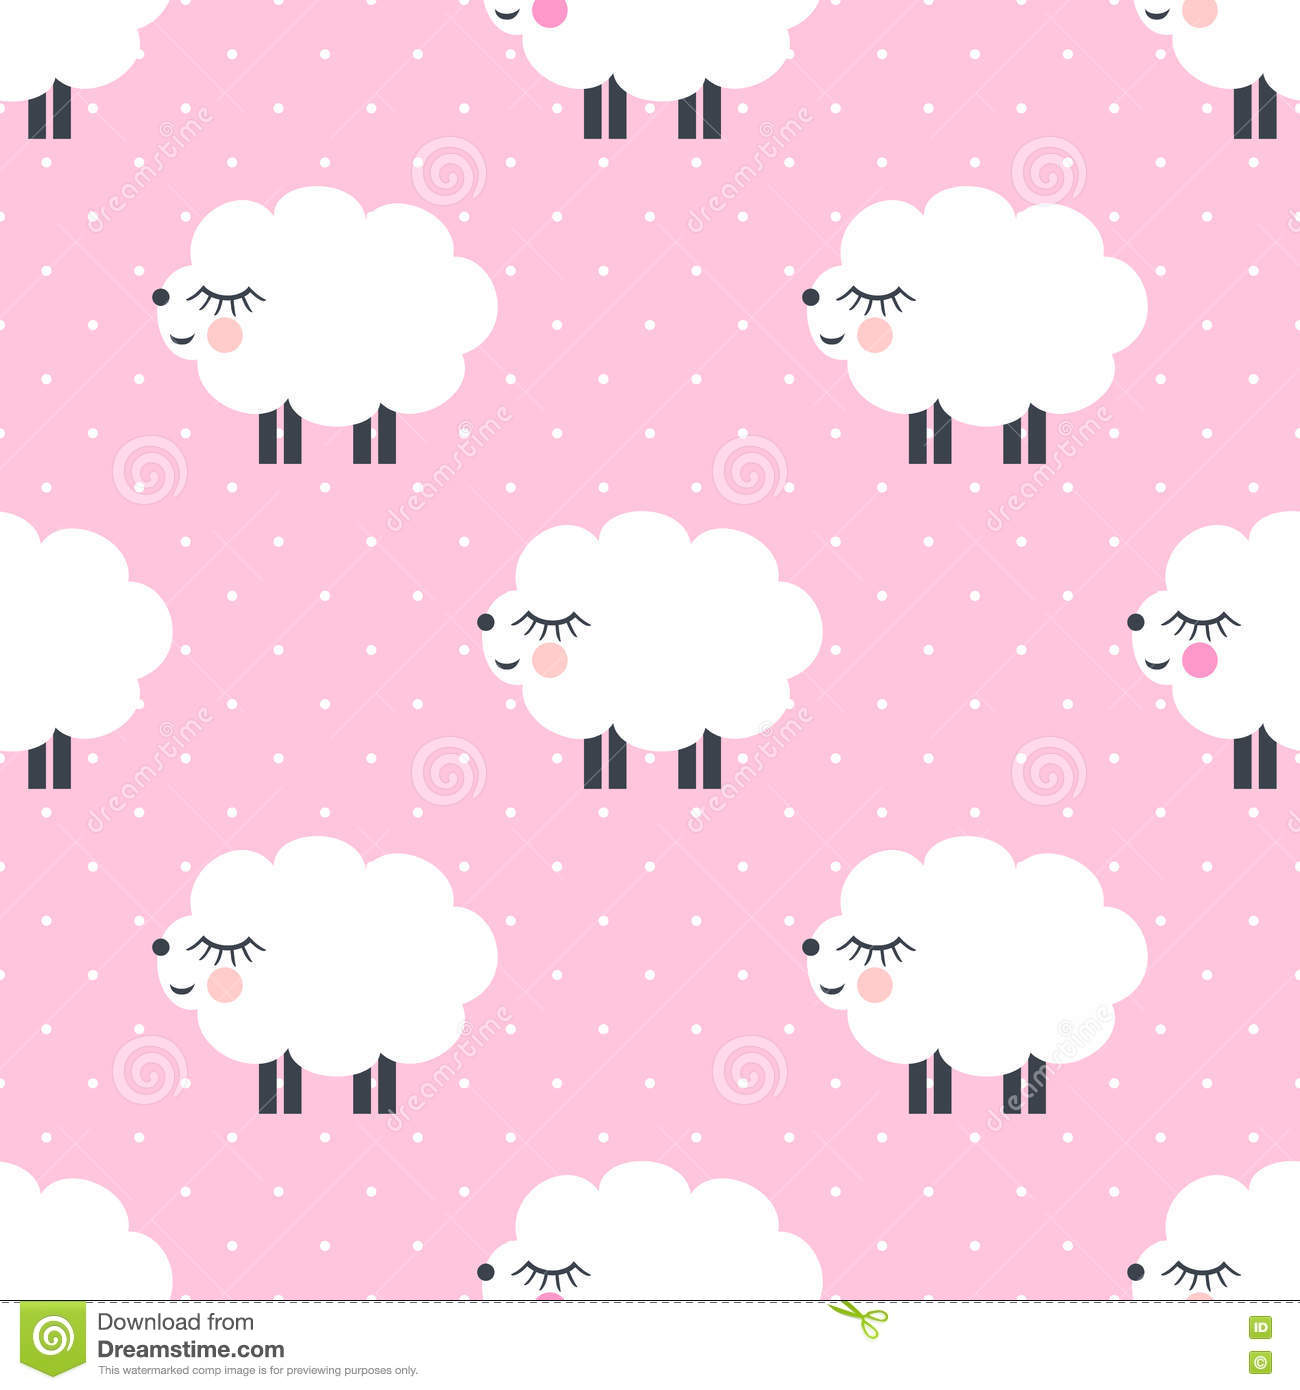 Cute Sheep Drawing Tumblr Cute Sheep Seamless Pattern On Pink Polka Dots Background